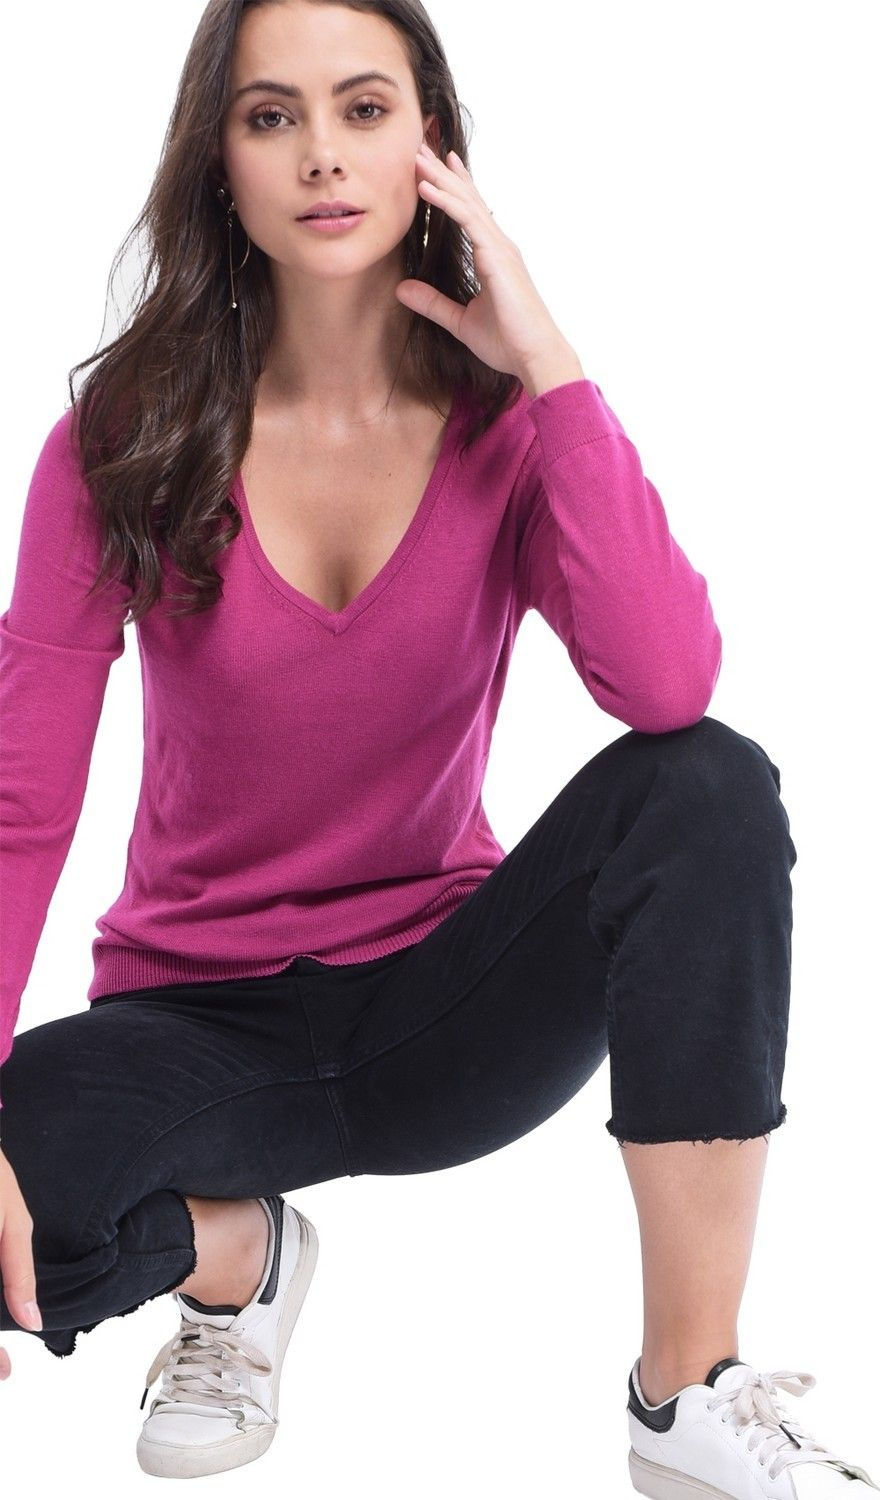 Assuili V-neck Sweater in Fuschia